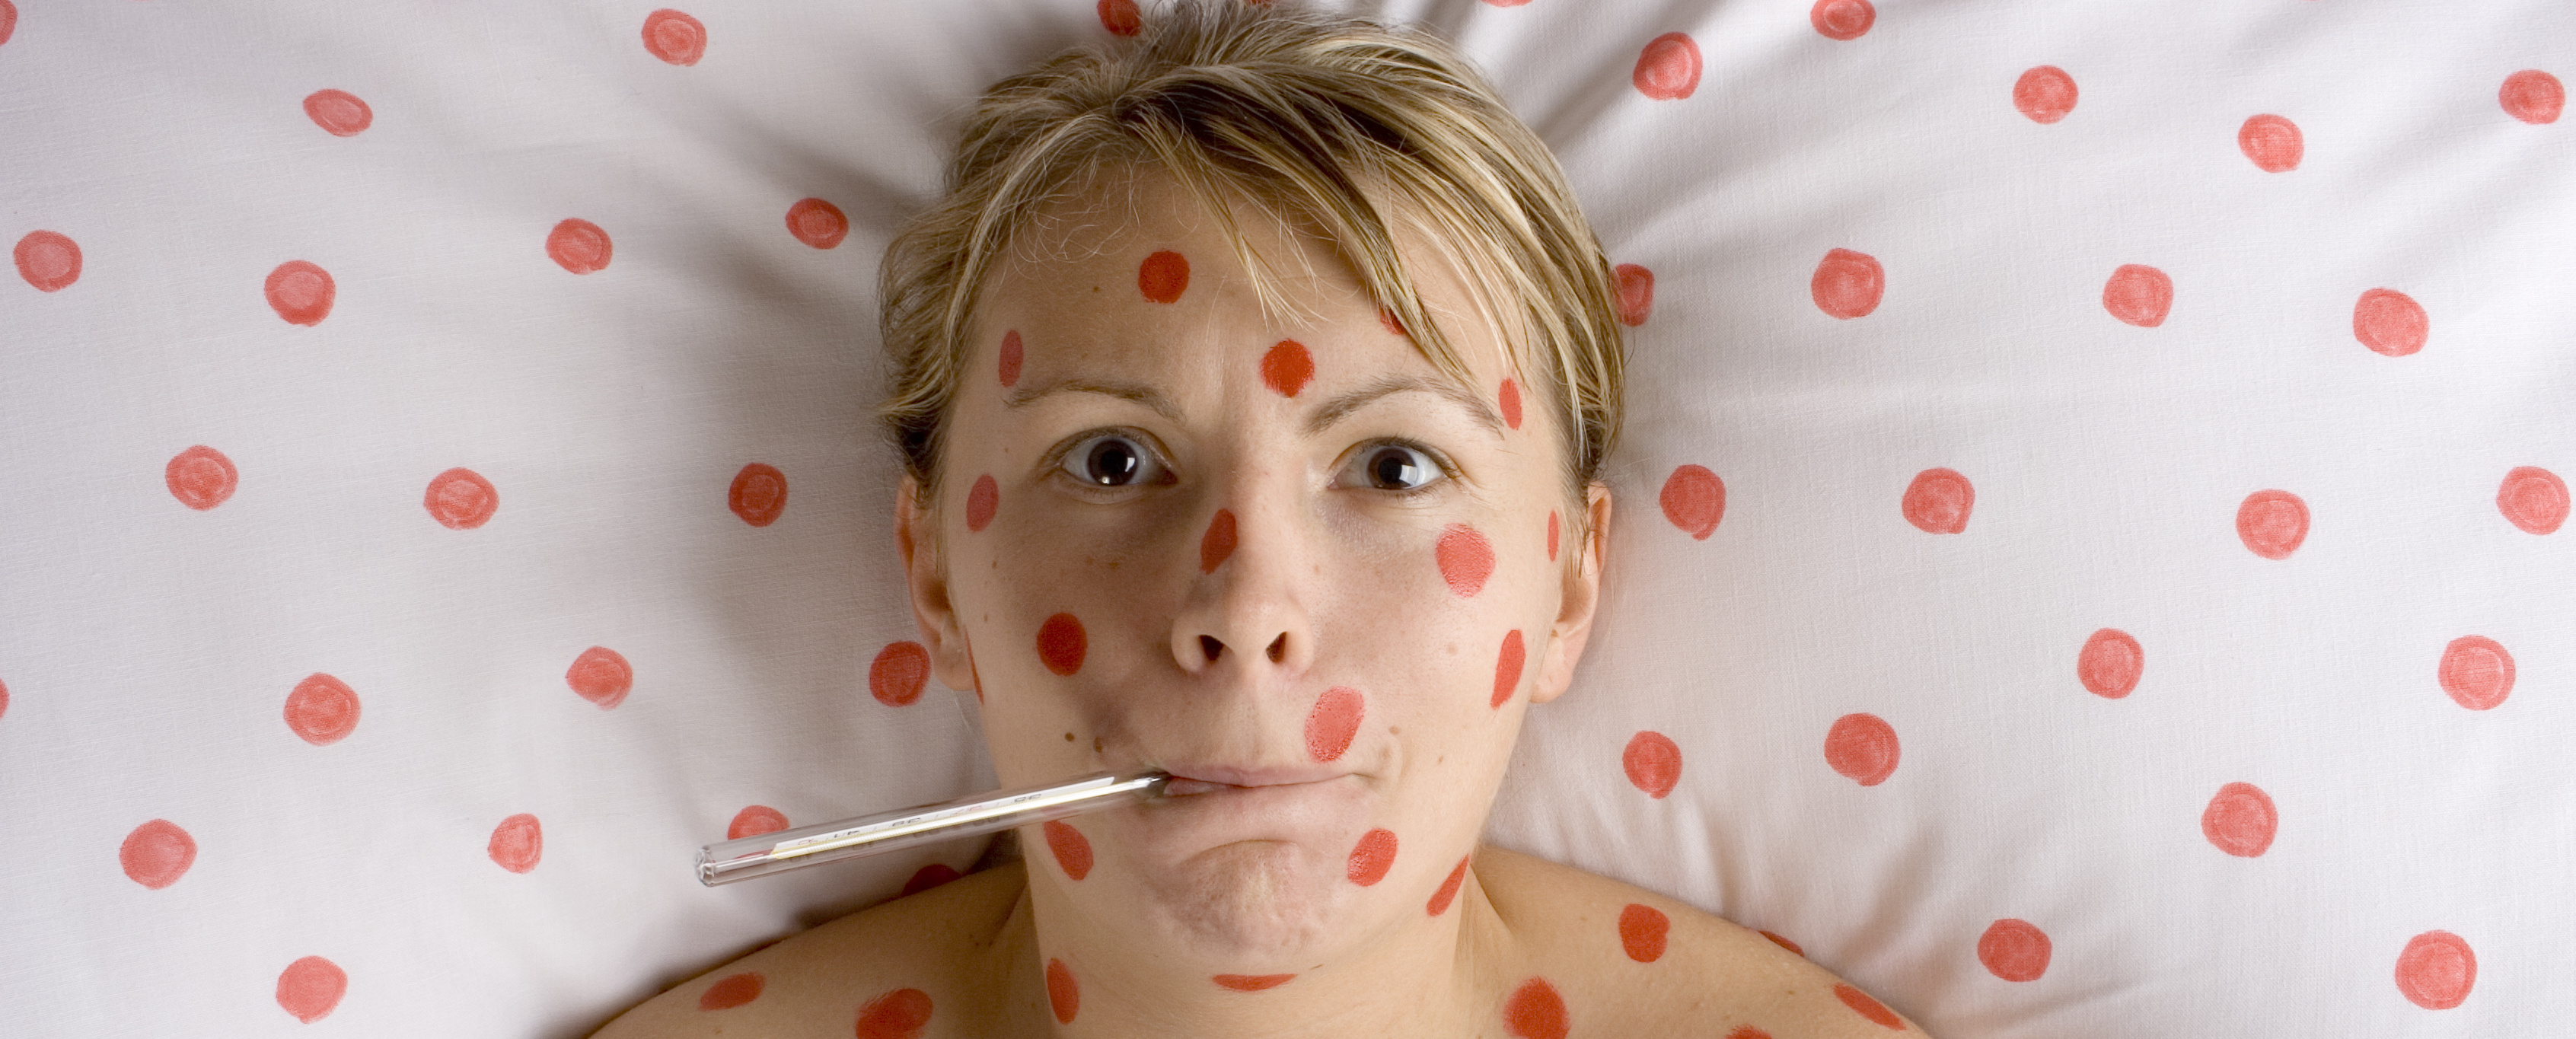 woman with red spots on face and body